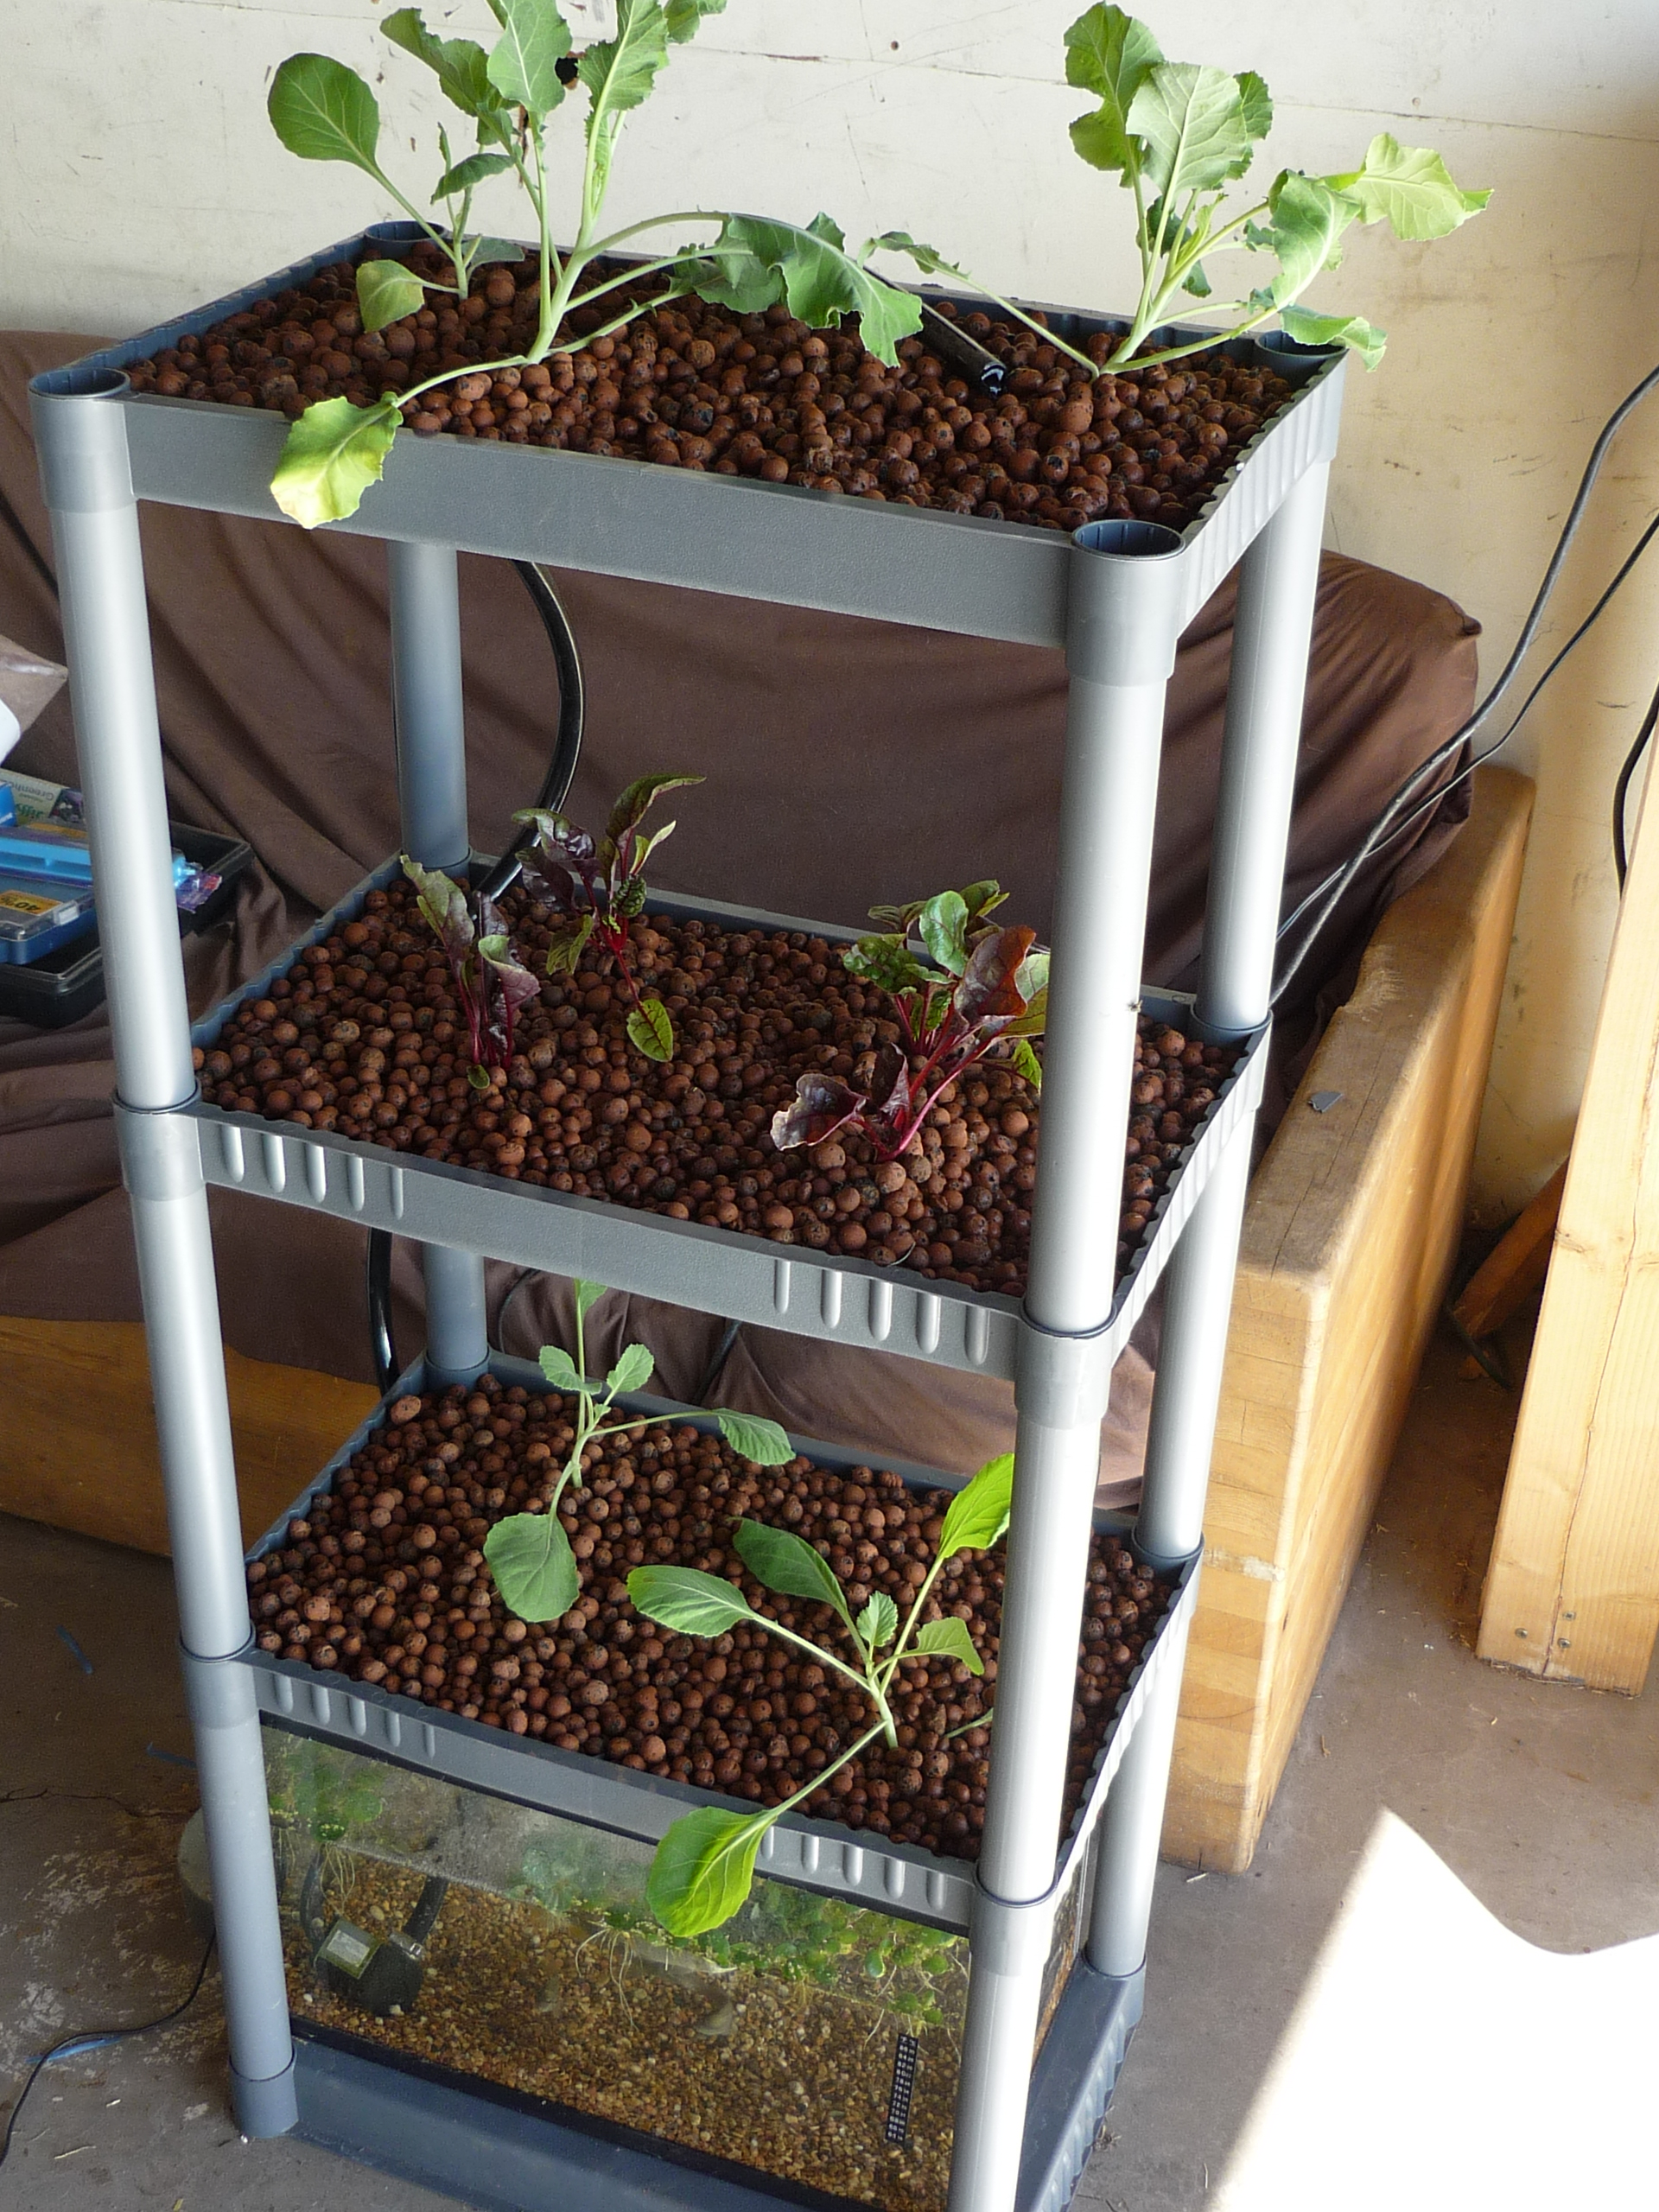 12 DIY Aquaponics System For Indoor And Backyard The  : Sexy shelfponics from theselfsufficientliving.com size 1920 x 2560 jpeg 2291kB